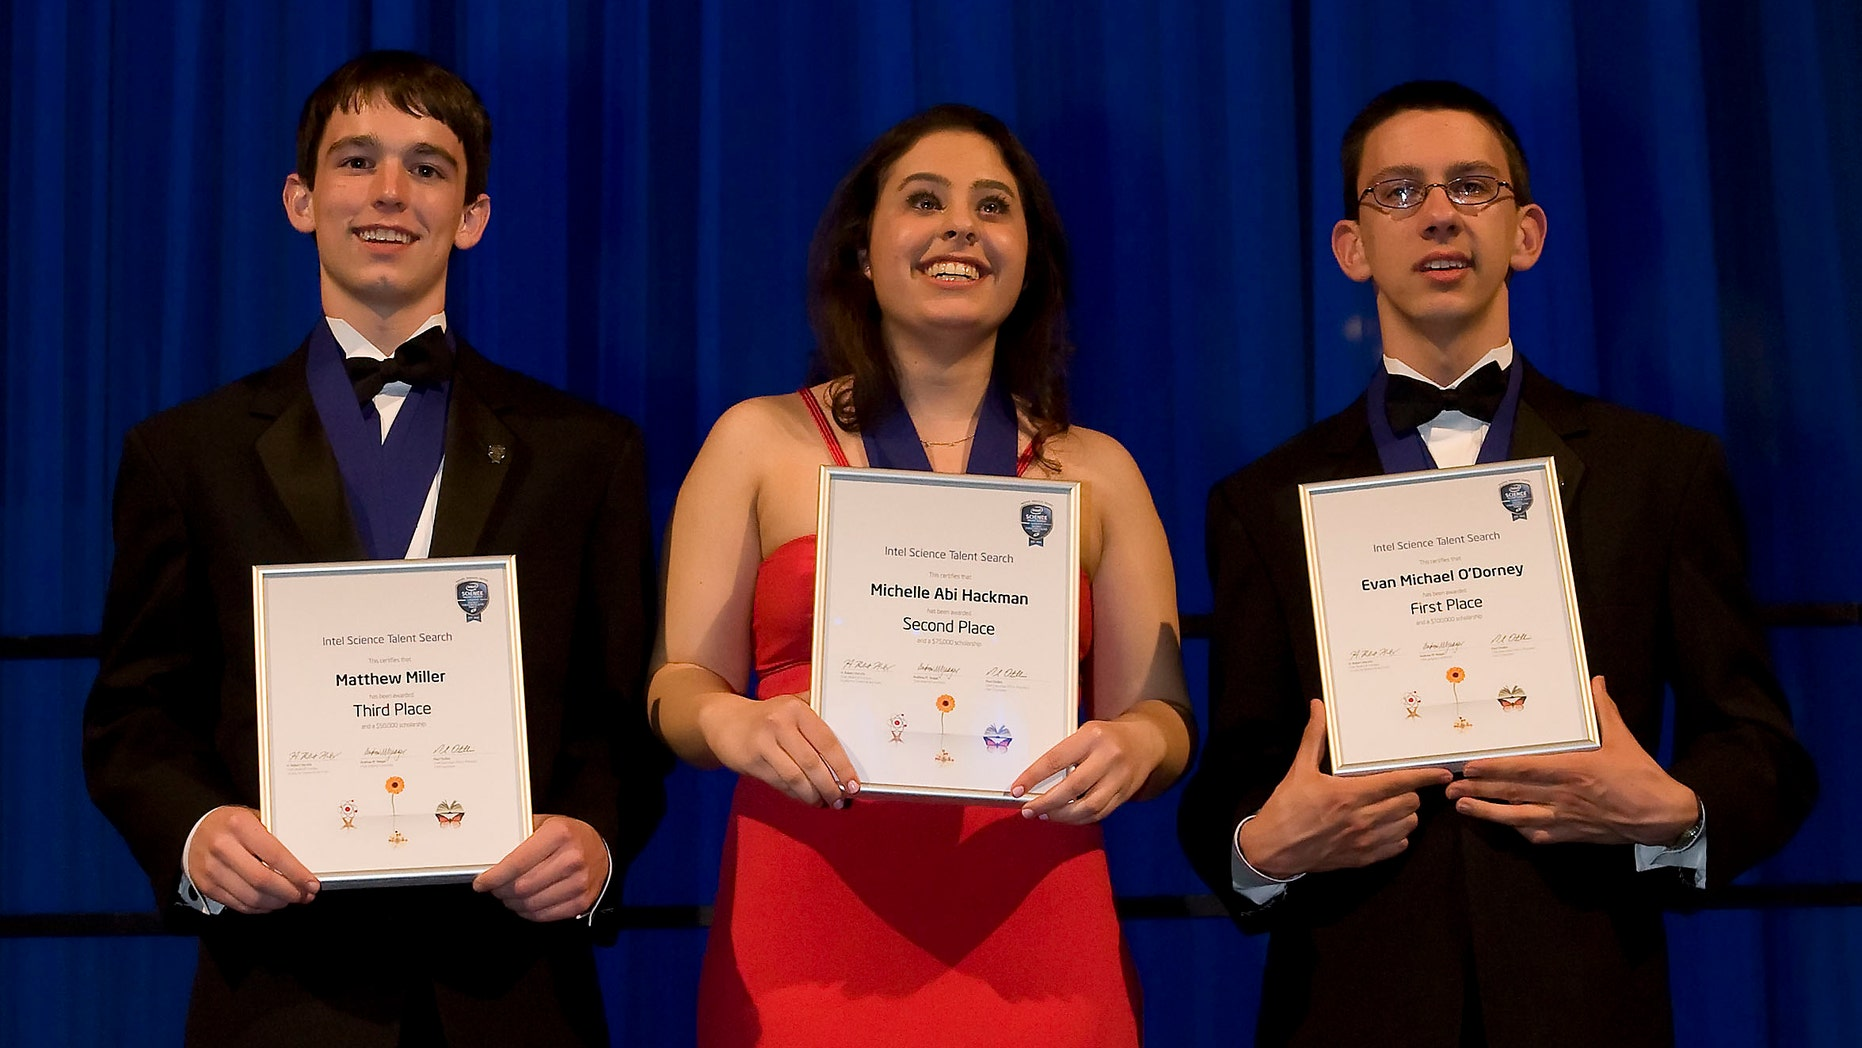 March 15: Intel Science Talent Search, a program of Society for Science and the Public, announced its top three winners, Evan O'Dorney, Michelle Hackman and Matthew Miller in Washington, D.C.